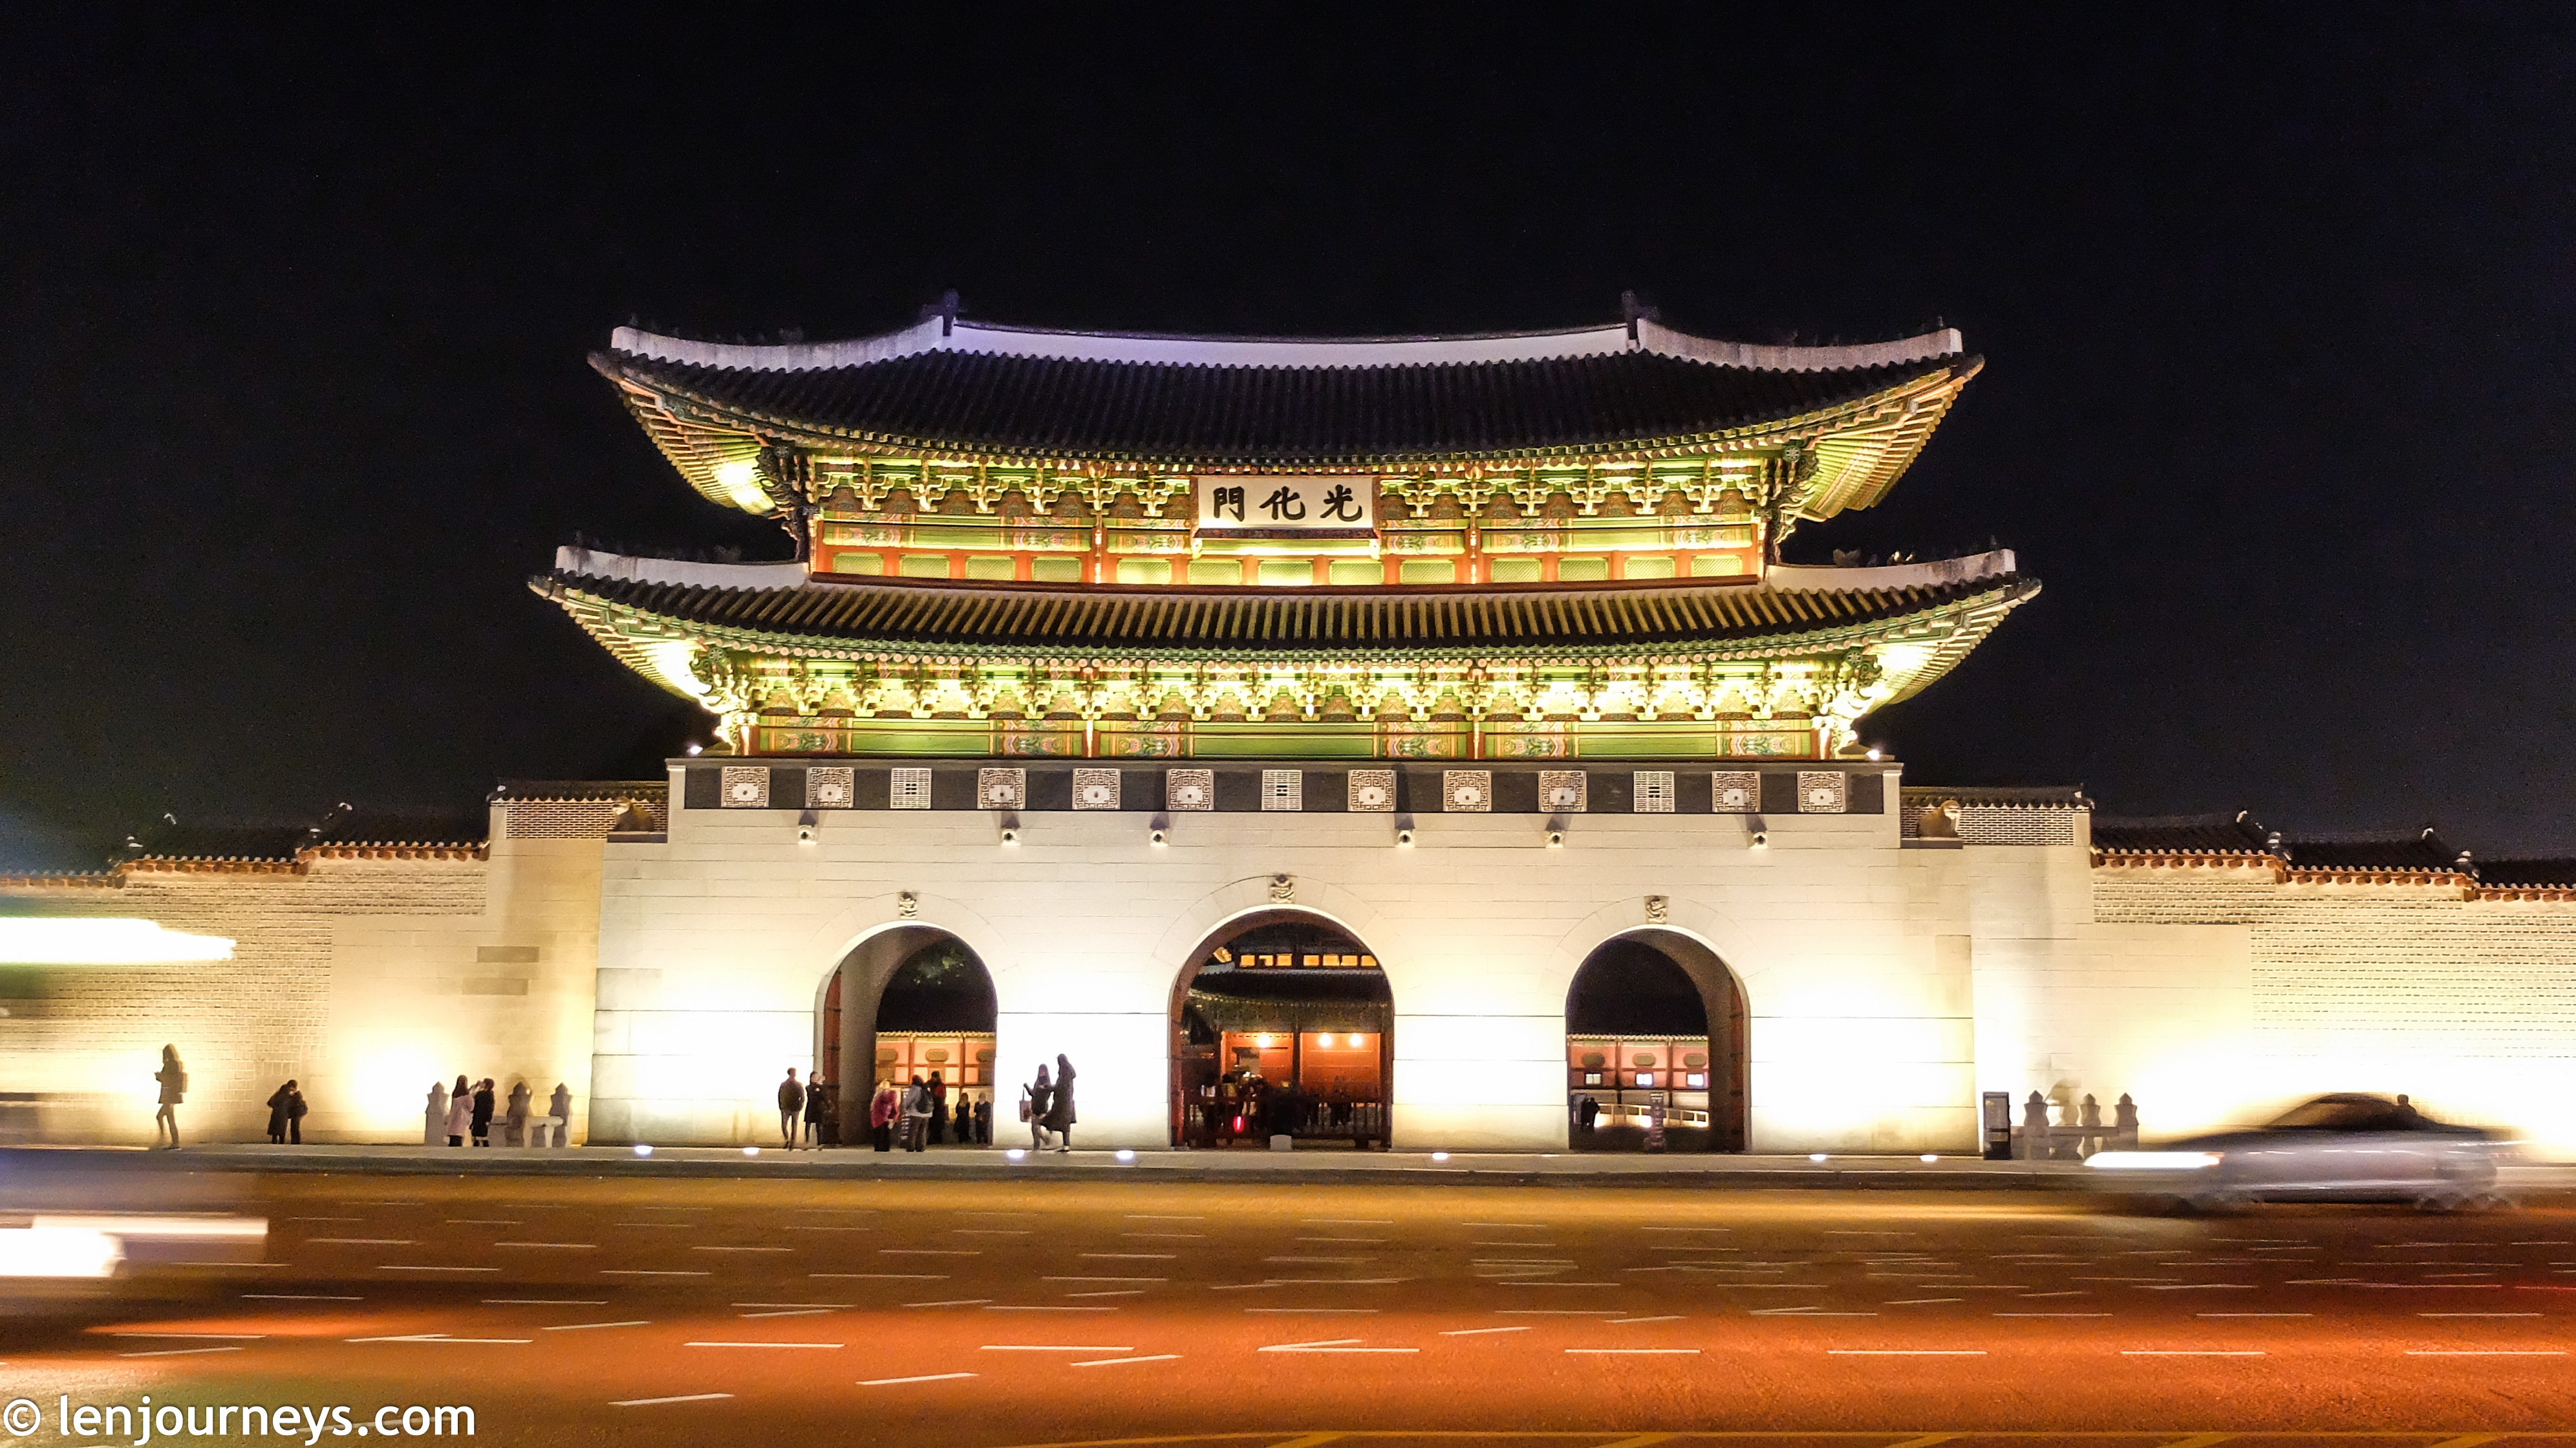 Gwanghwamun - The palace's main entrance